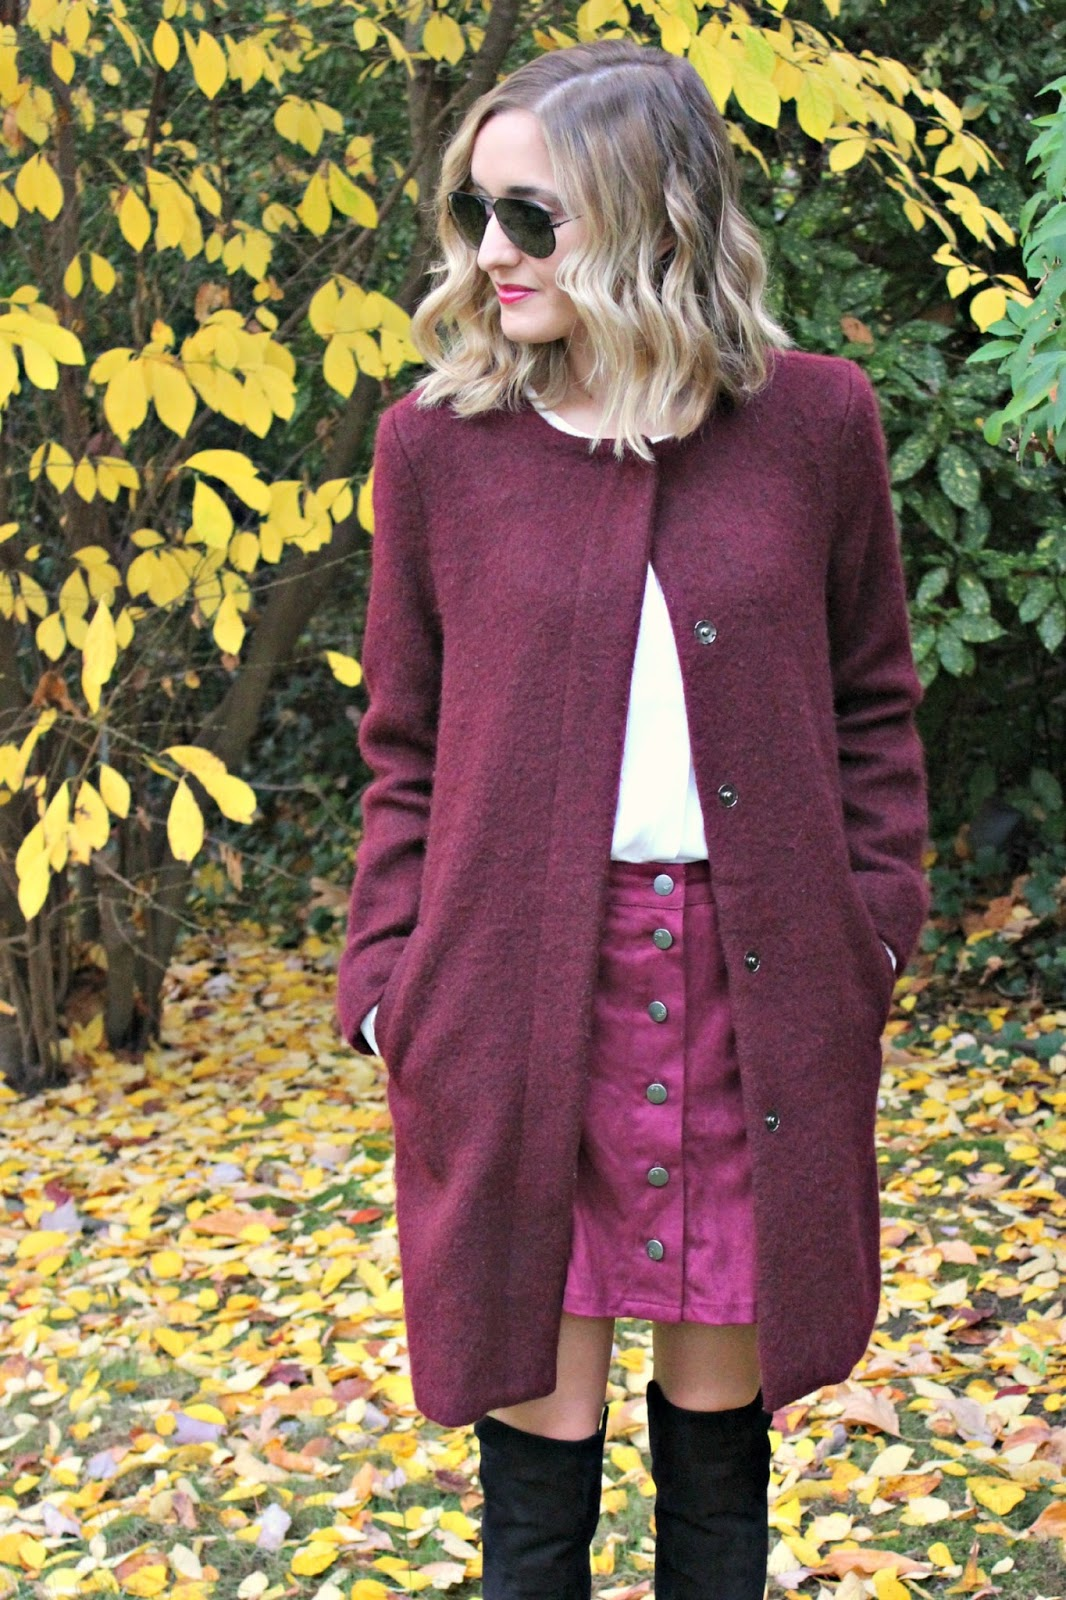 bb dakota burgundy coat